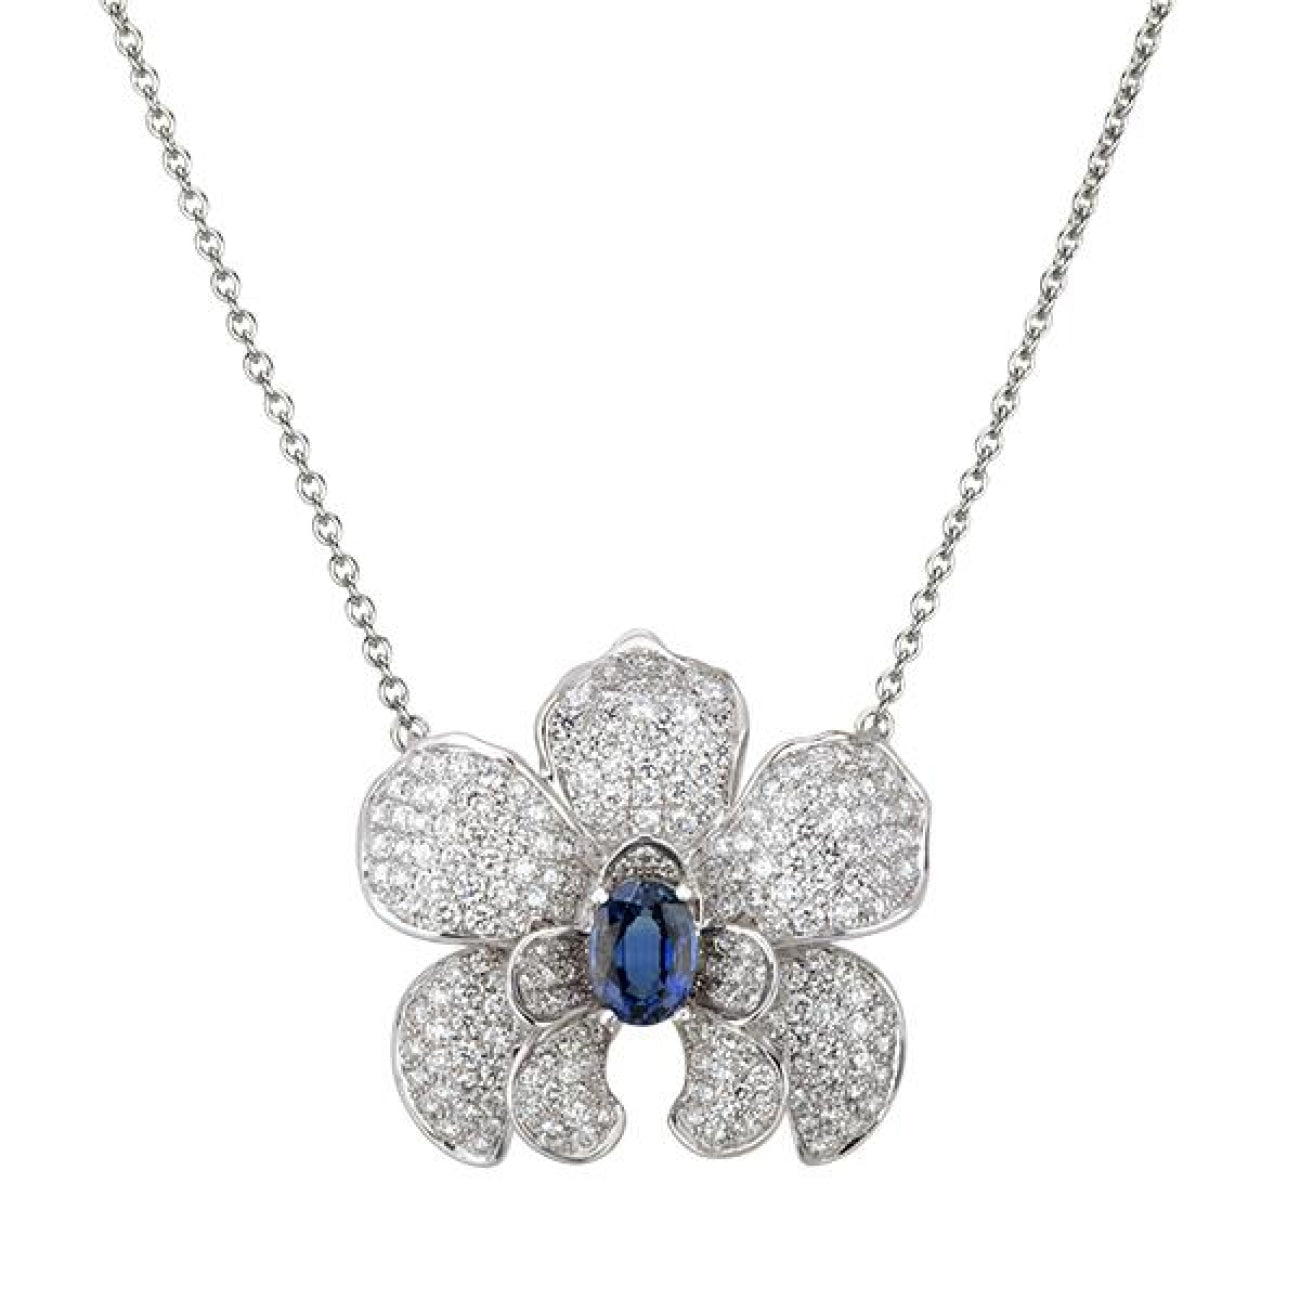 Carrera Y Carrera Jewelry - Orquideas Medium Necklace | Manfredi Jewels